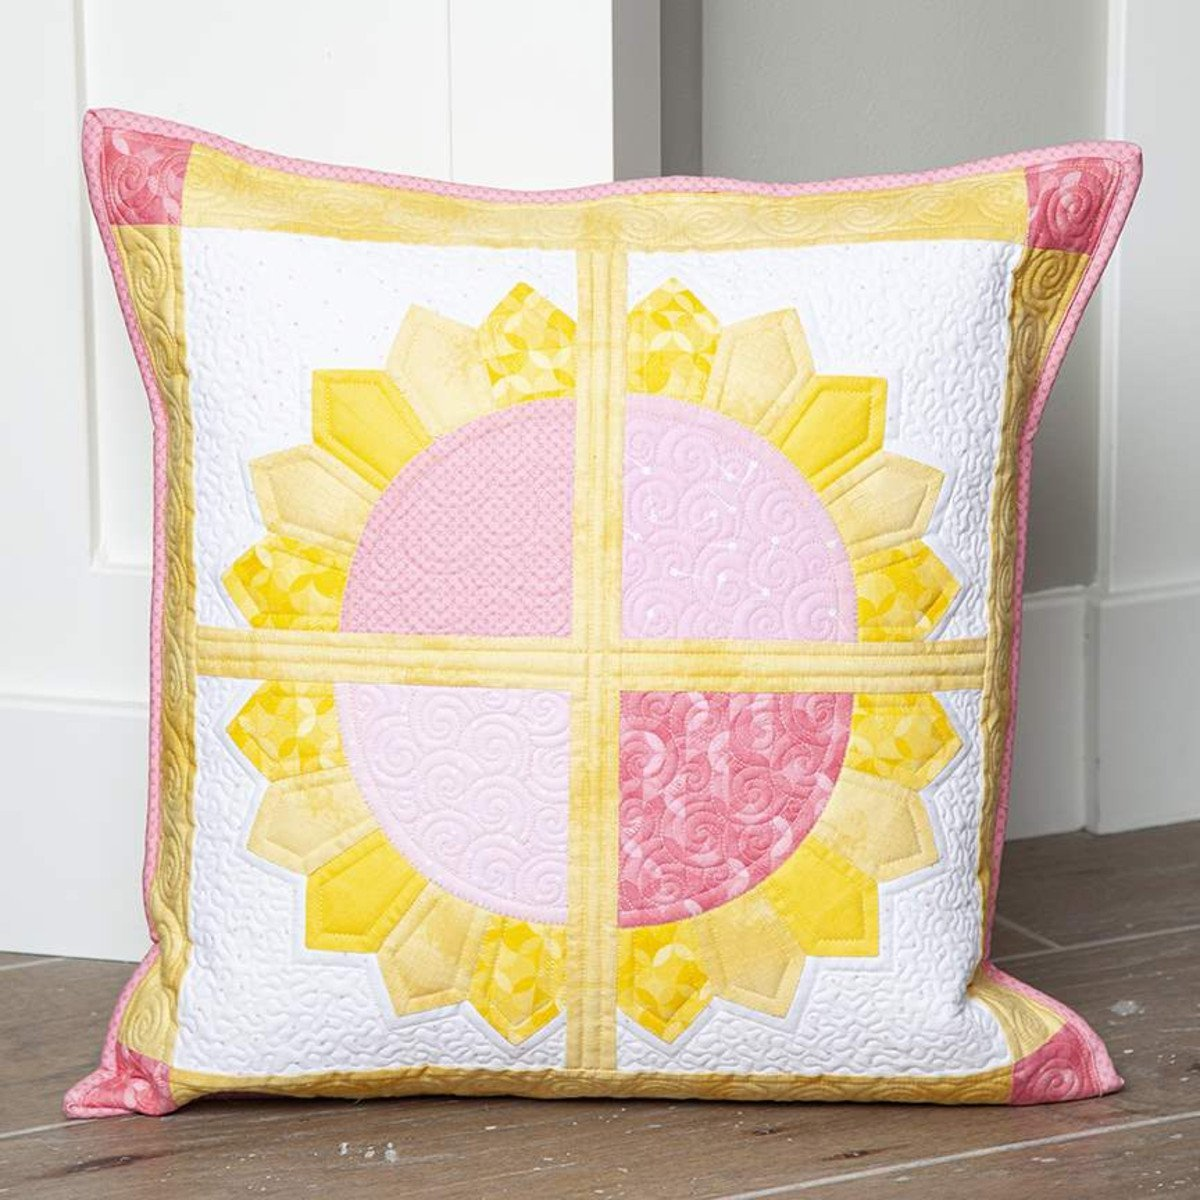 Riley Blake Pillow of the Month - June